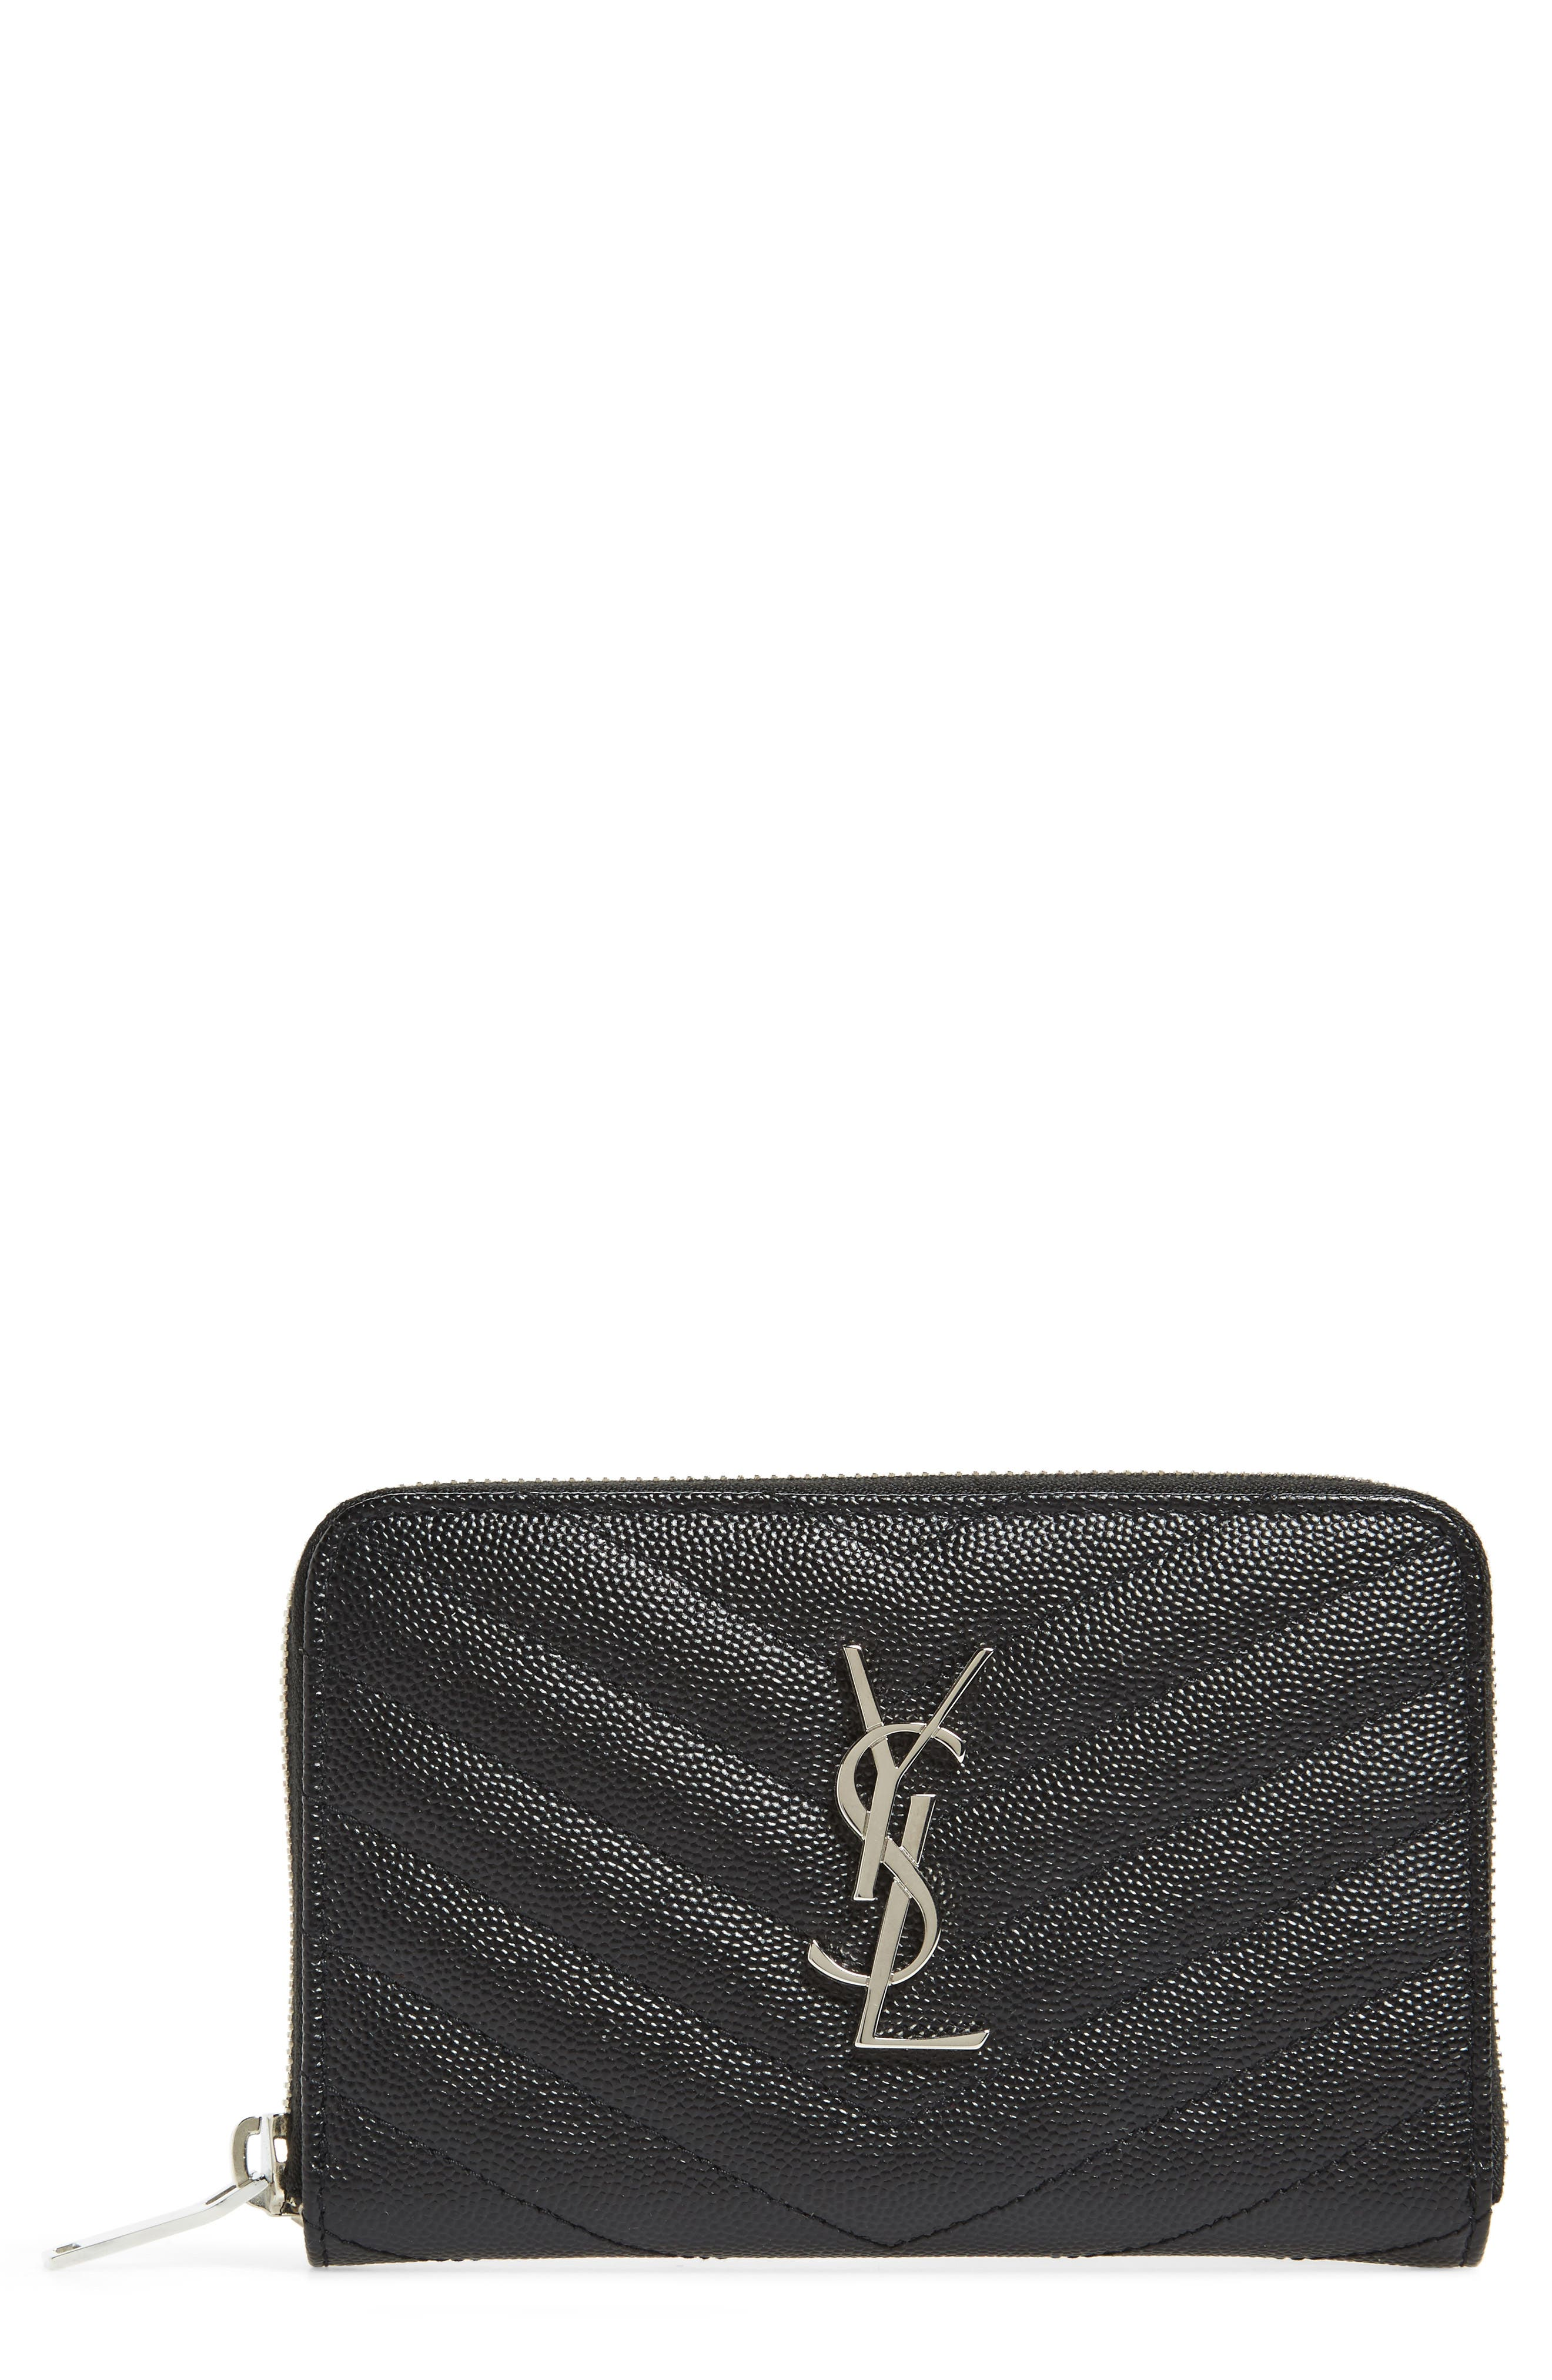 Small Grained Leather Zip Around Wallet,                         Main,                         color, 001